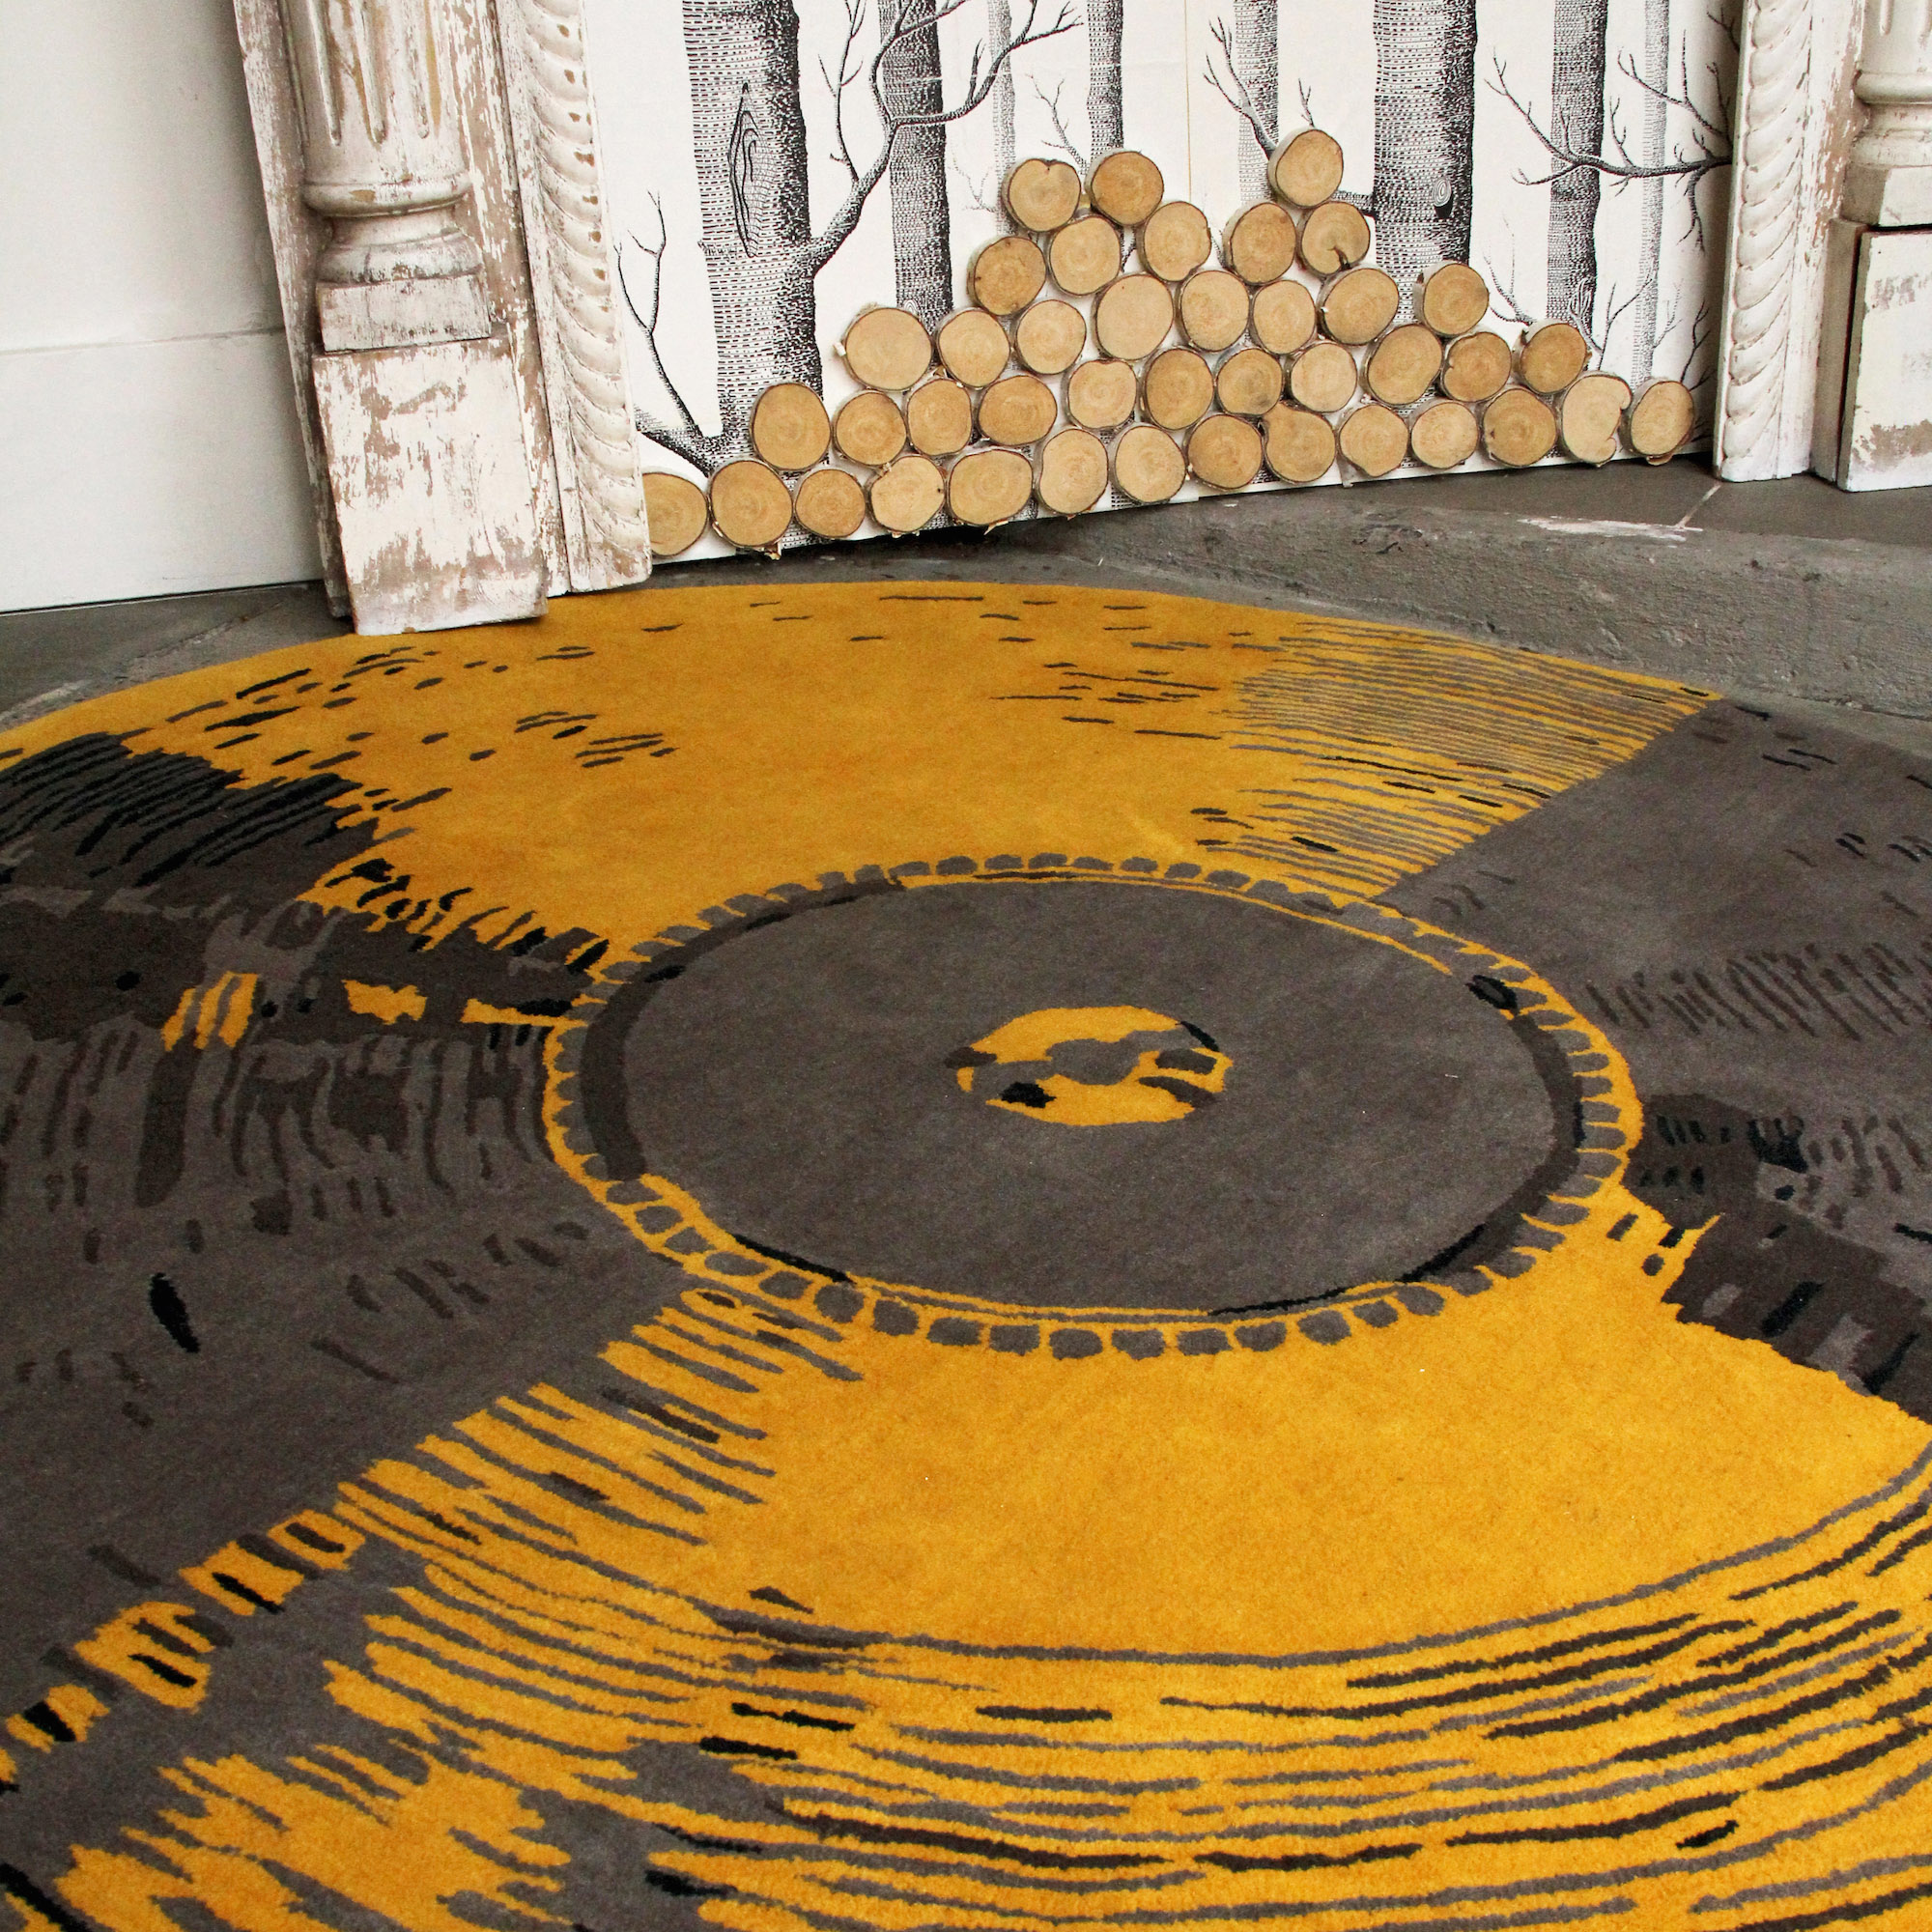 'Vinyl' by Kush Rugs shown in situ theatricalis in colourway 'Canary' | Photograph courtesy of Kush Rugs.